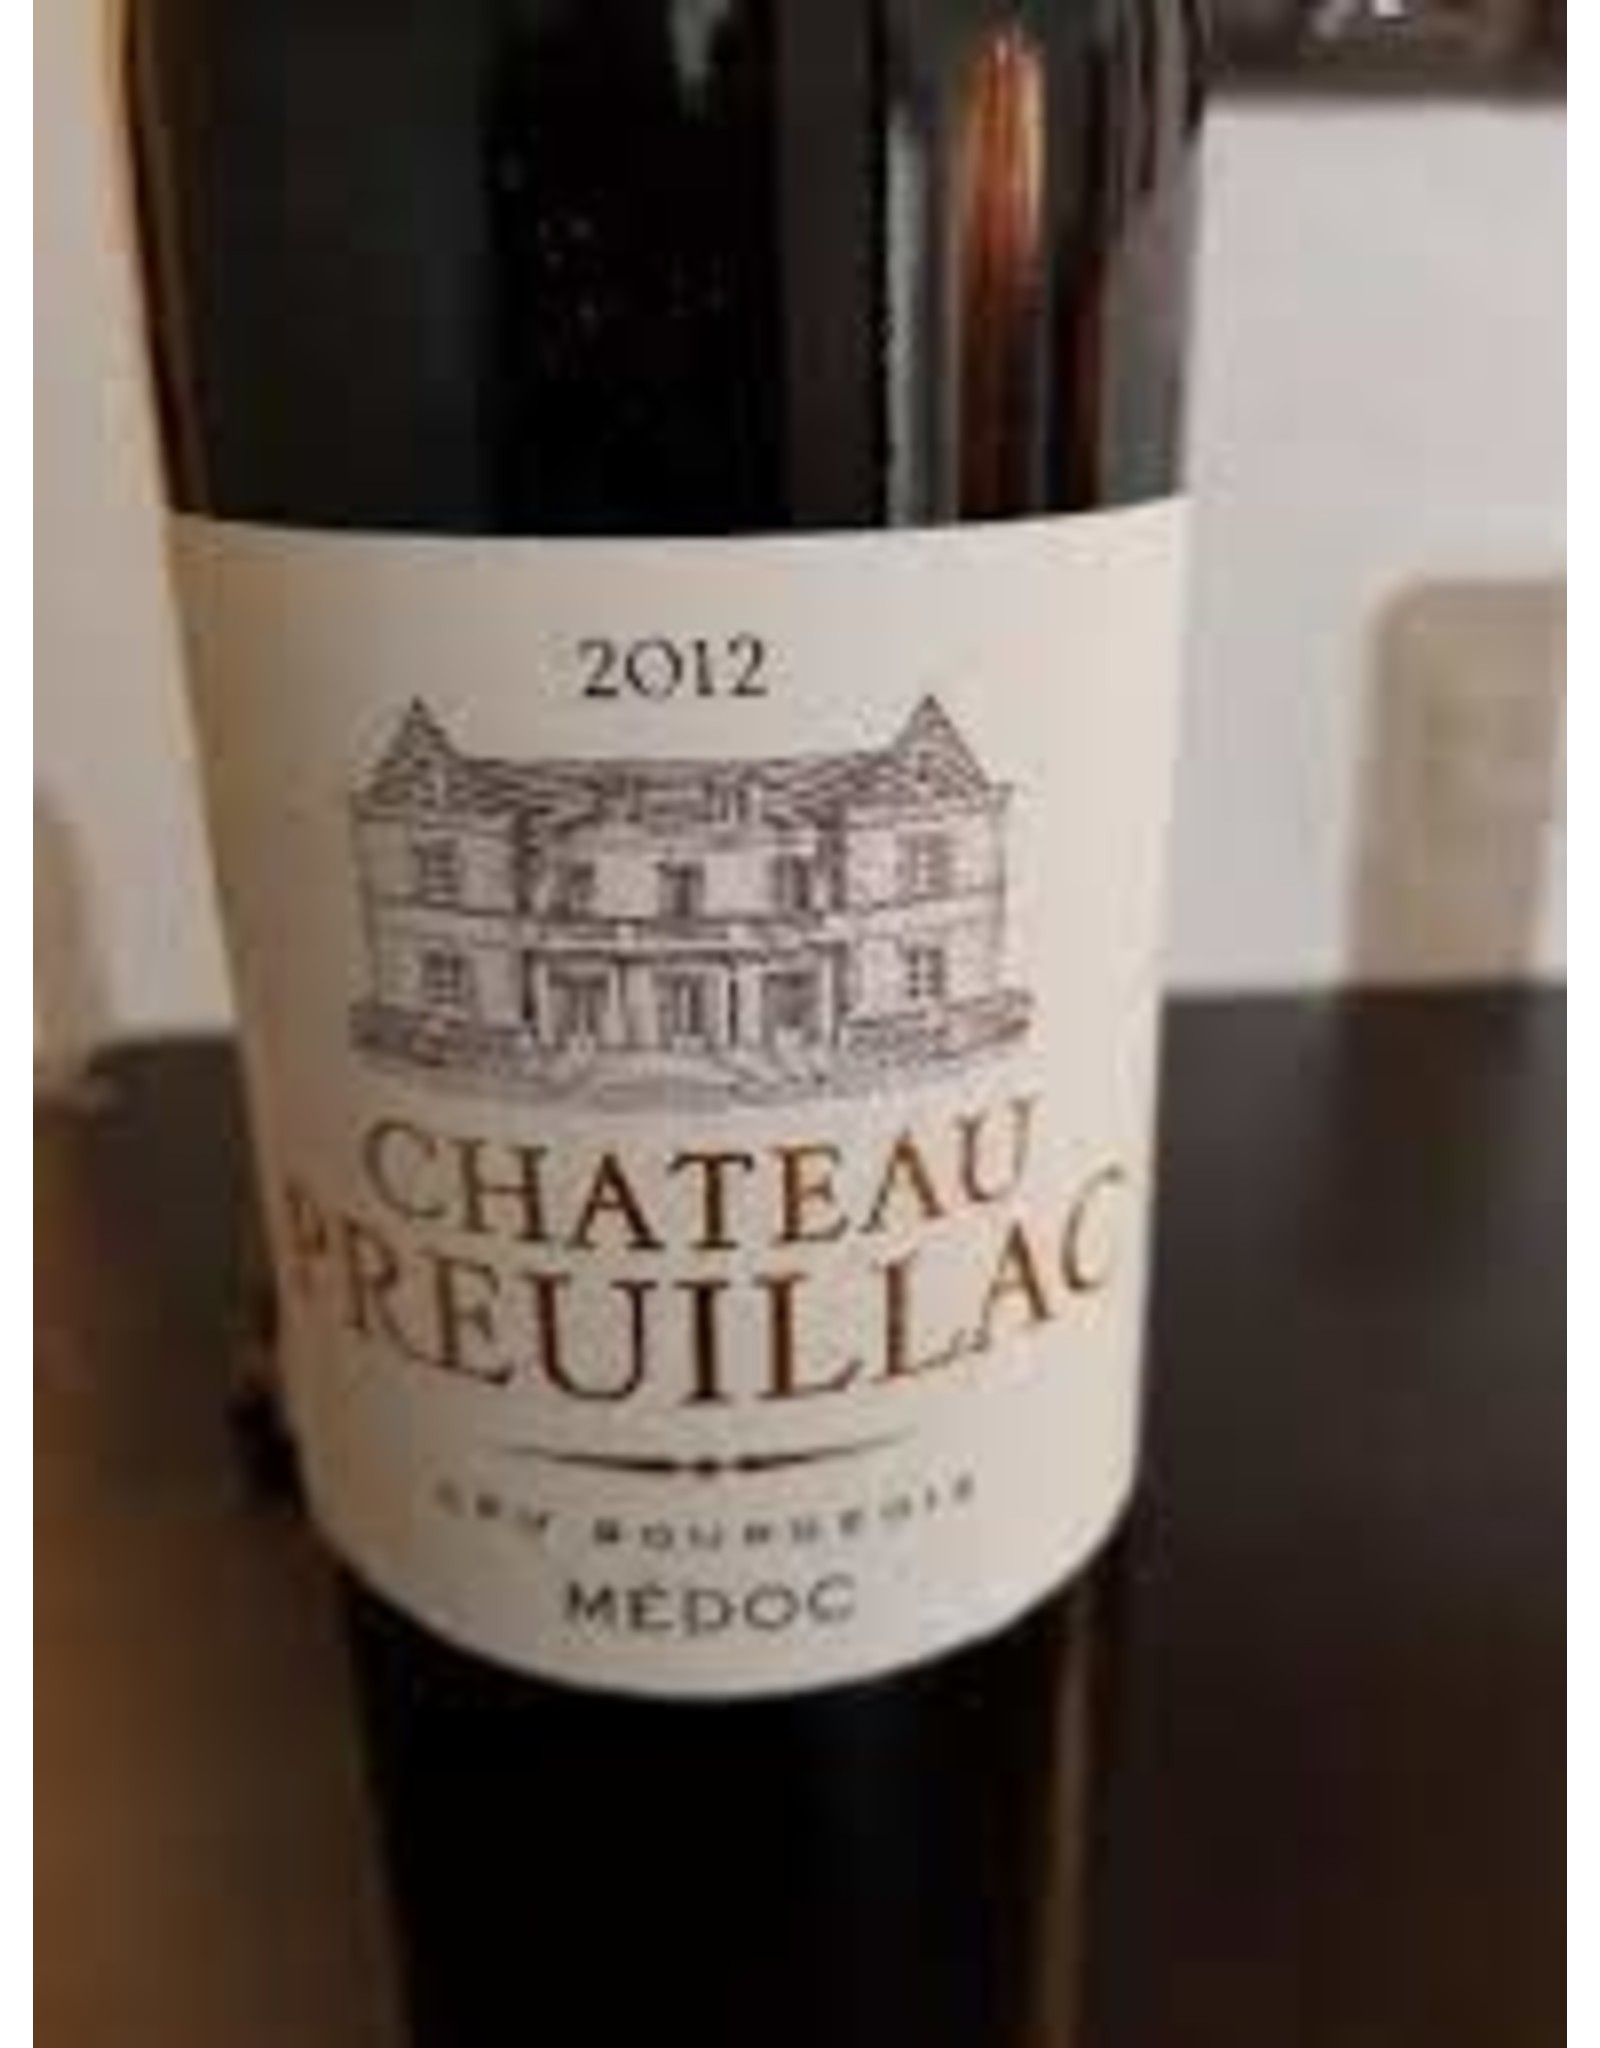 CHATEAU PREUILLAC MEDOC 2012